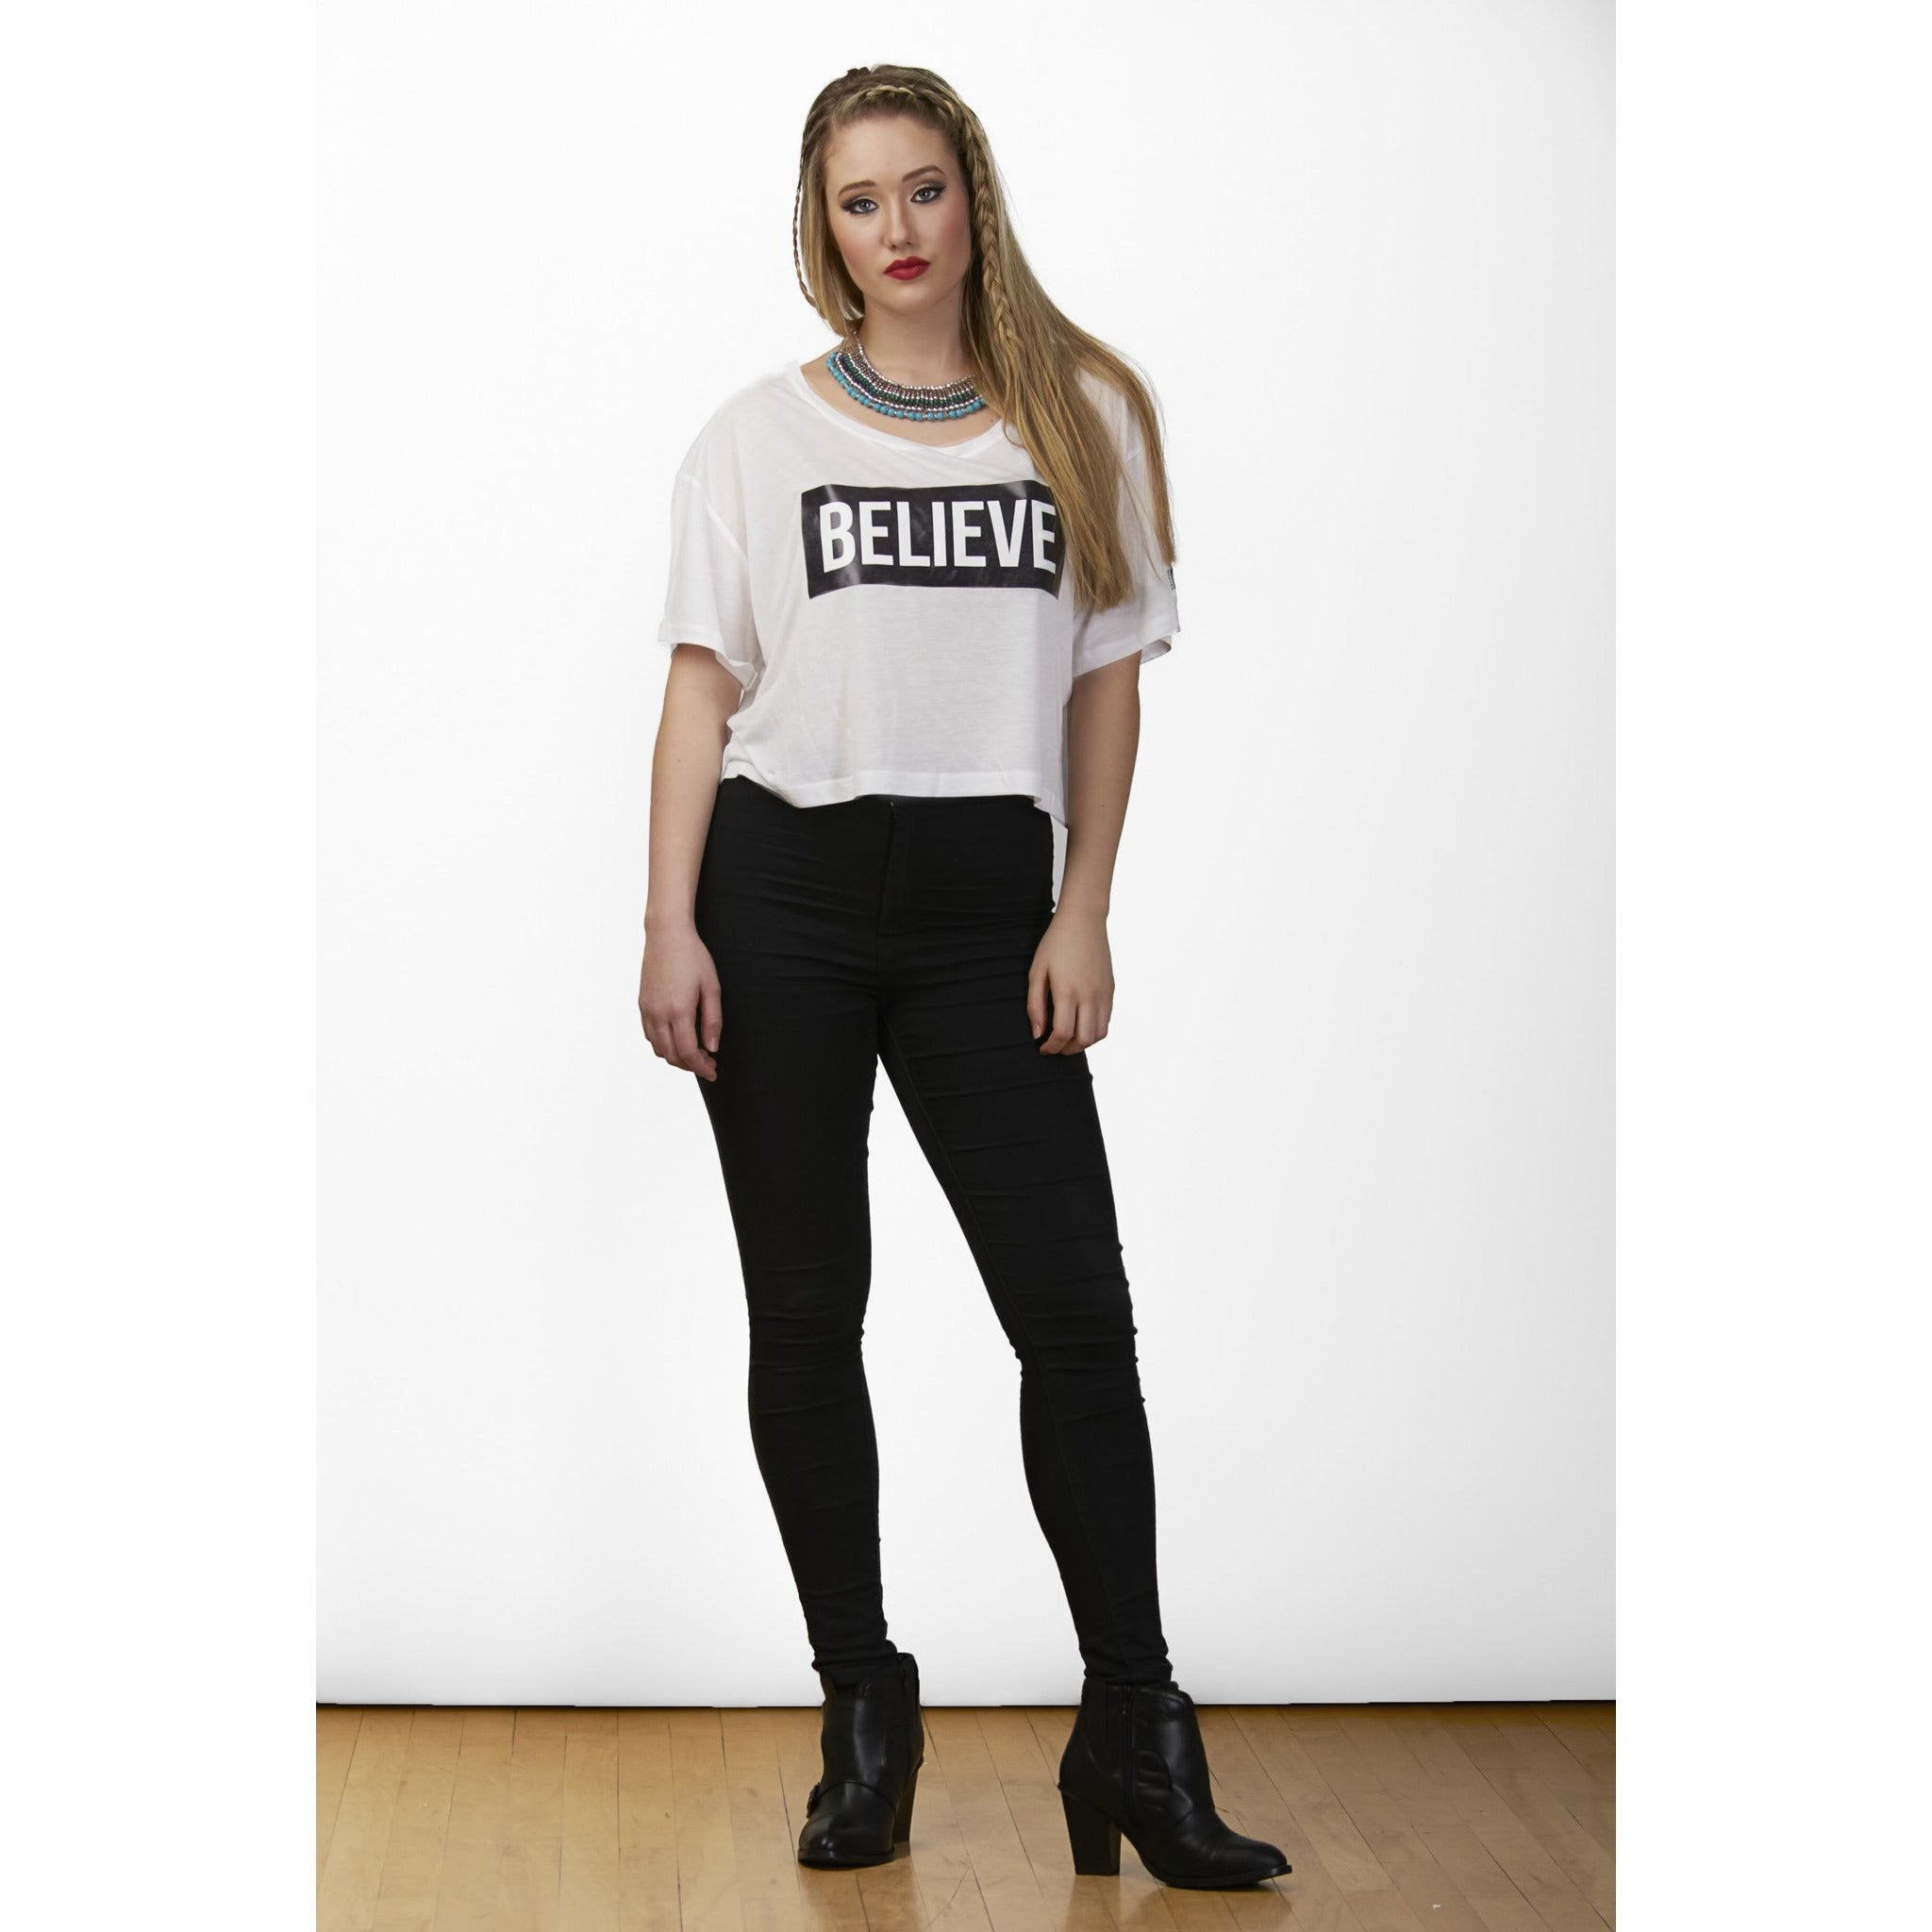 """I Love Me"" Collection - 'BELIEVE' White Cropped Top - Crop Tops - KryptikRose®"